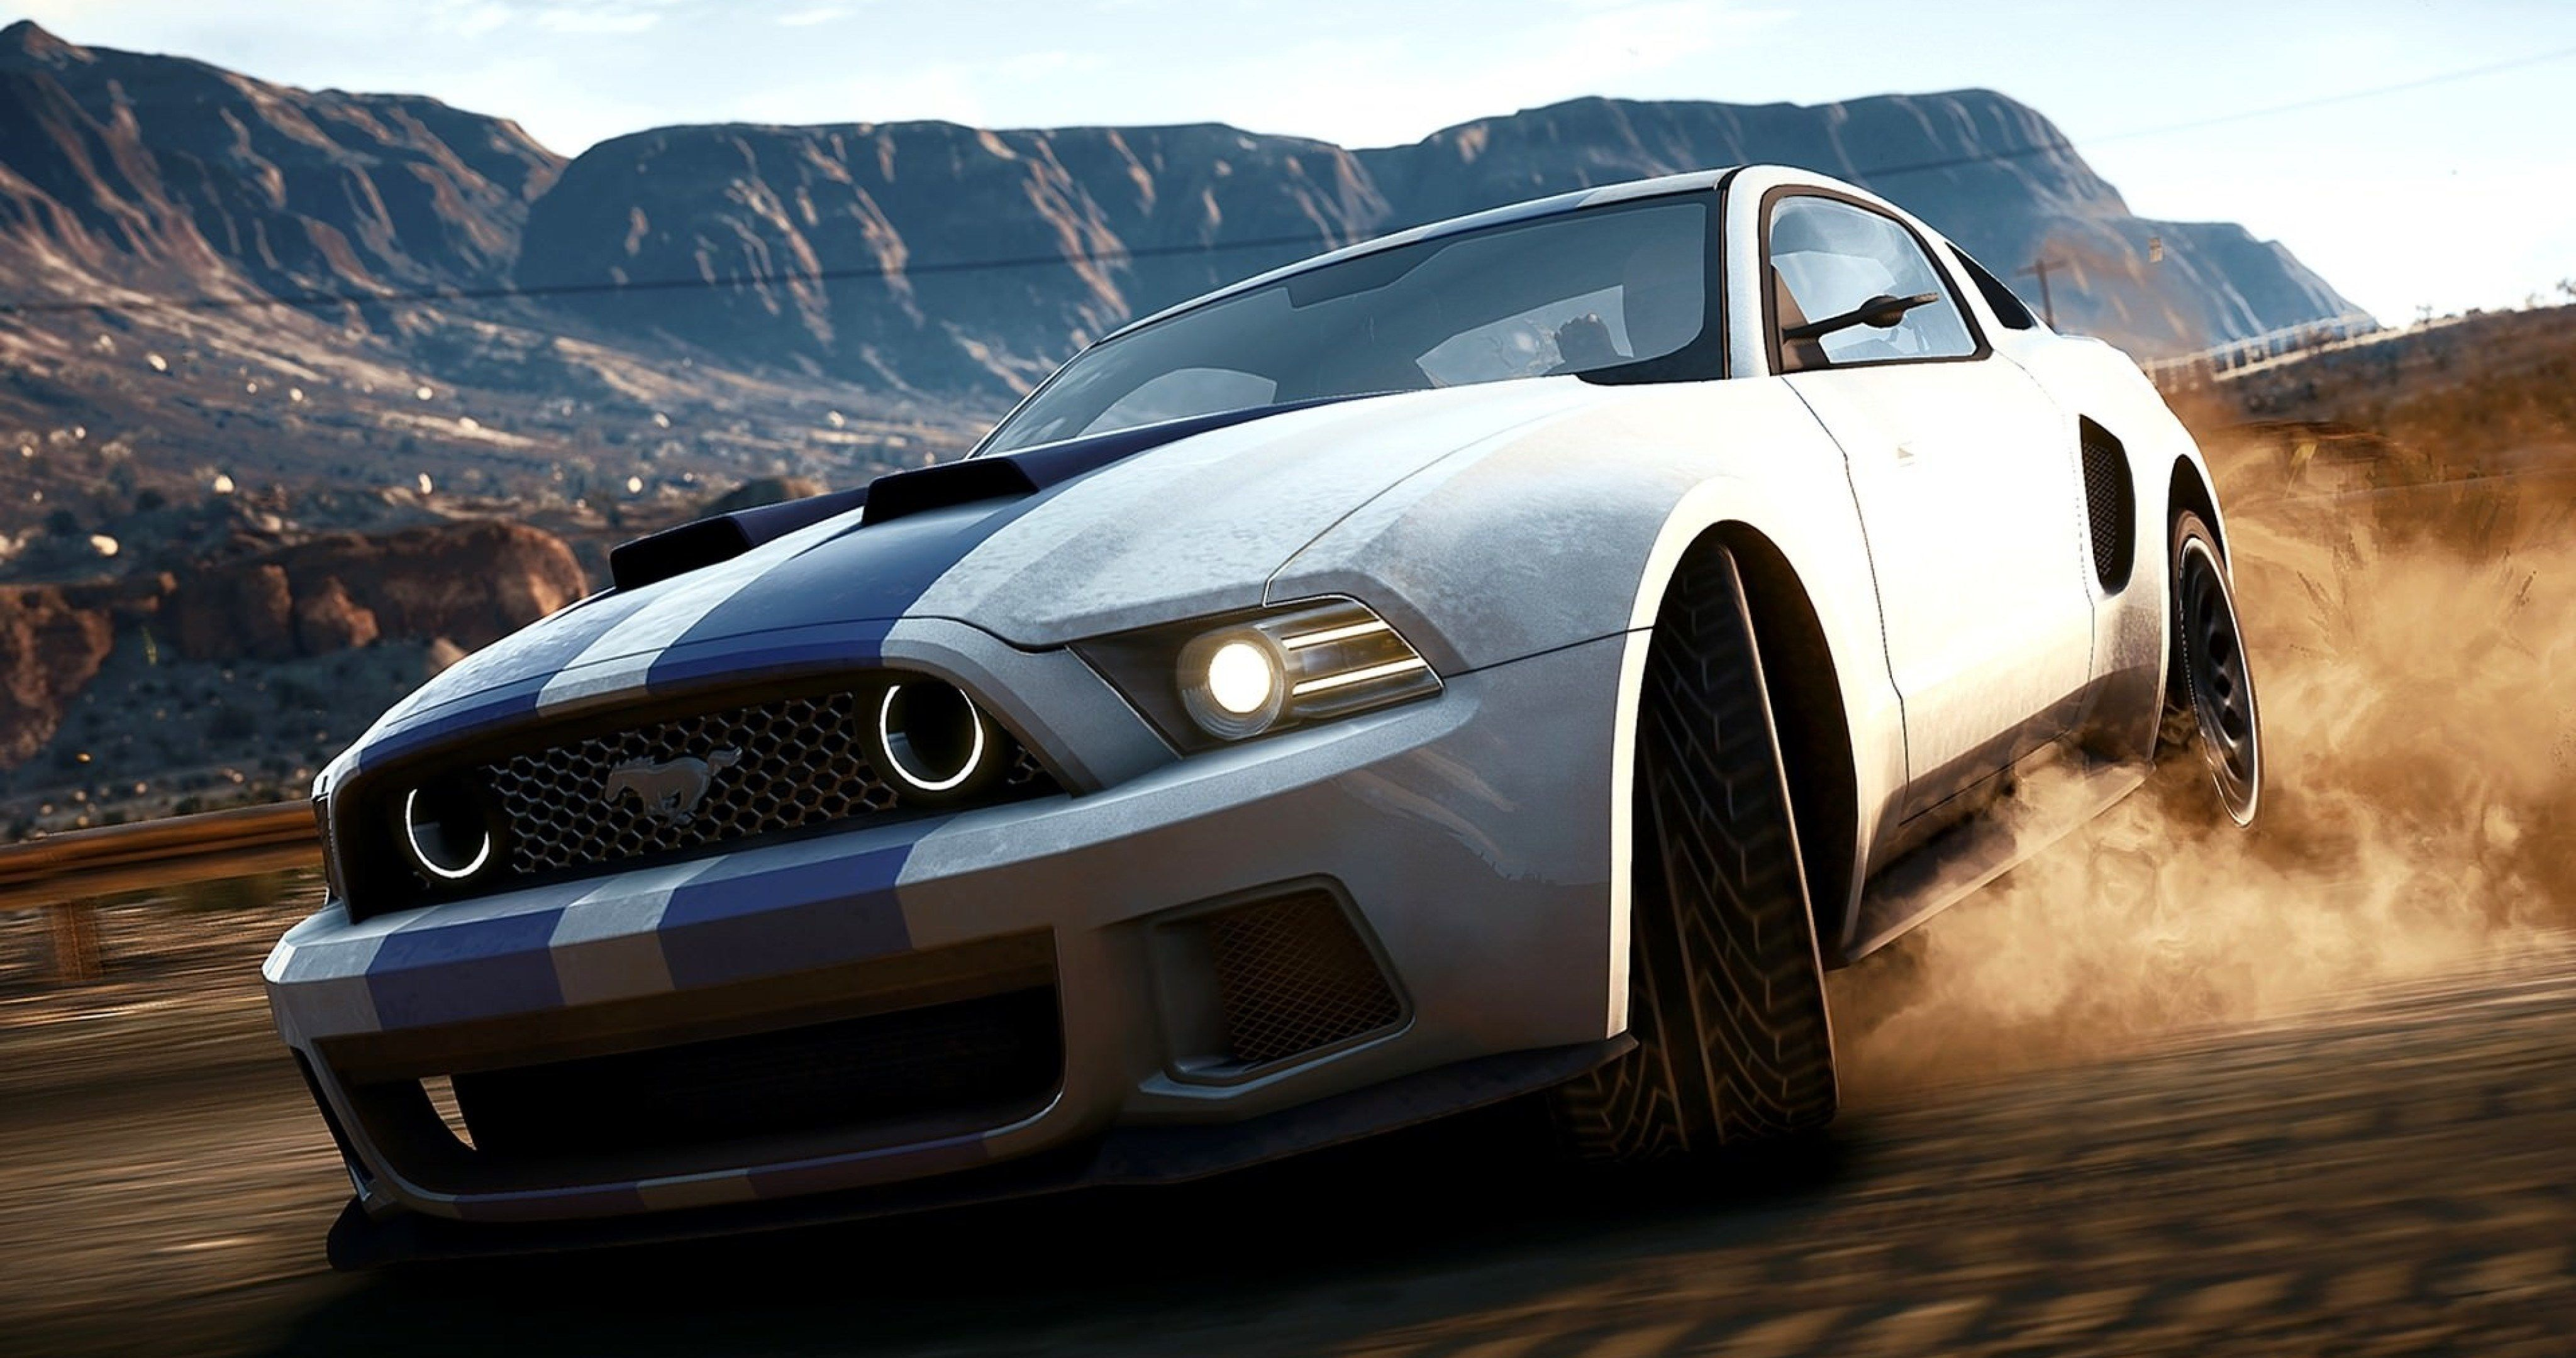 Game Need For Speed Rivals 4k Ultra Hd Wallpaper Ololoshenka